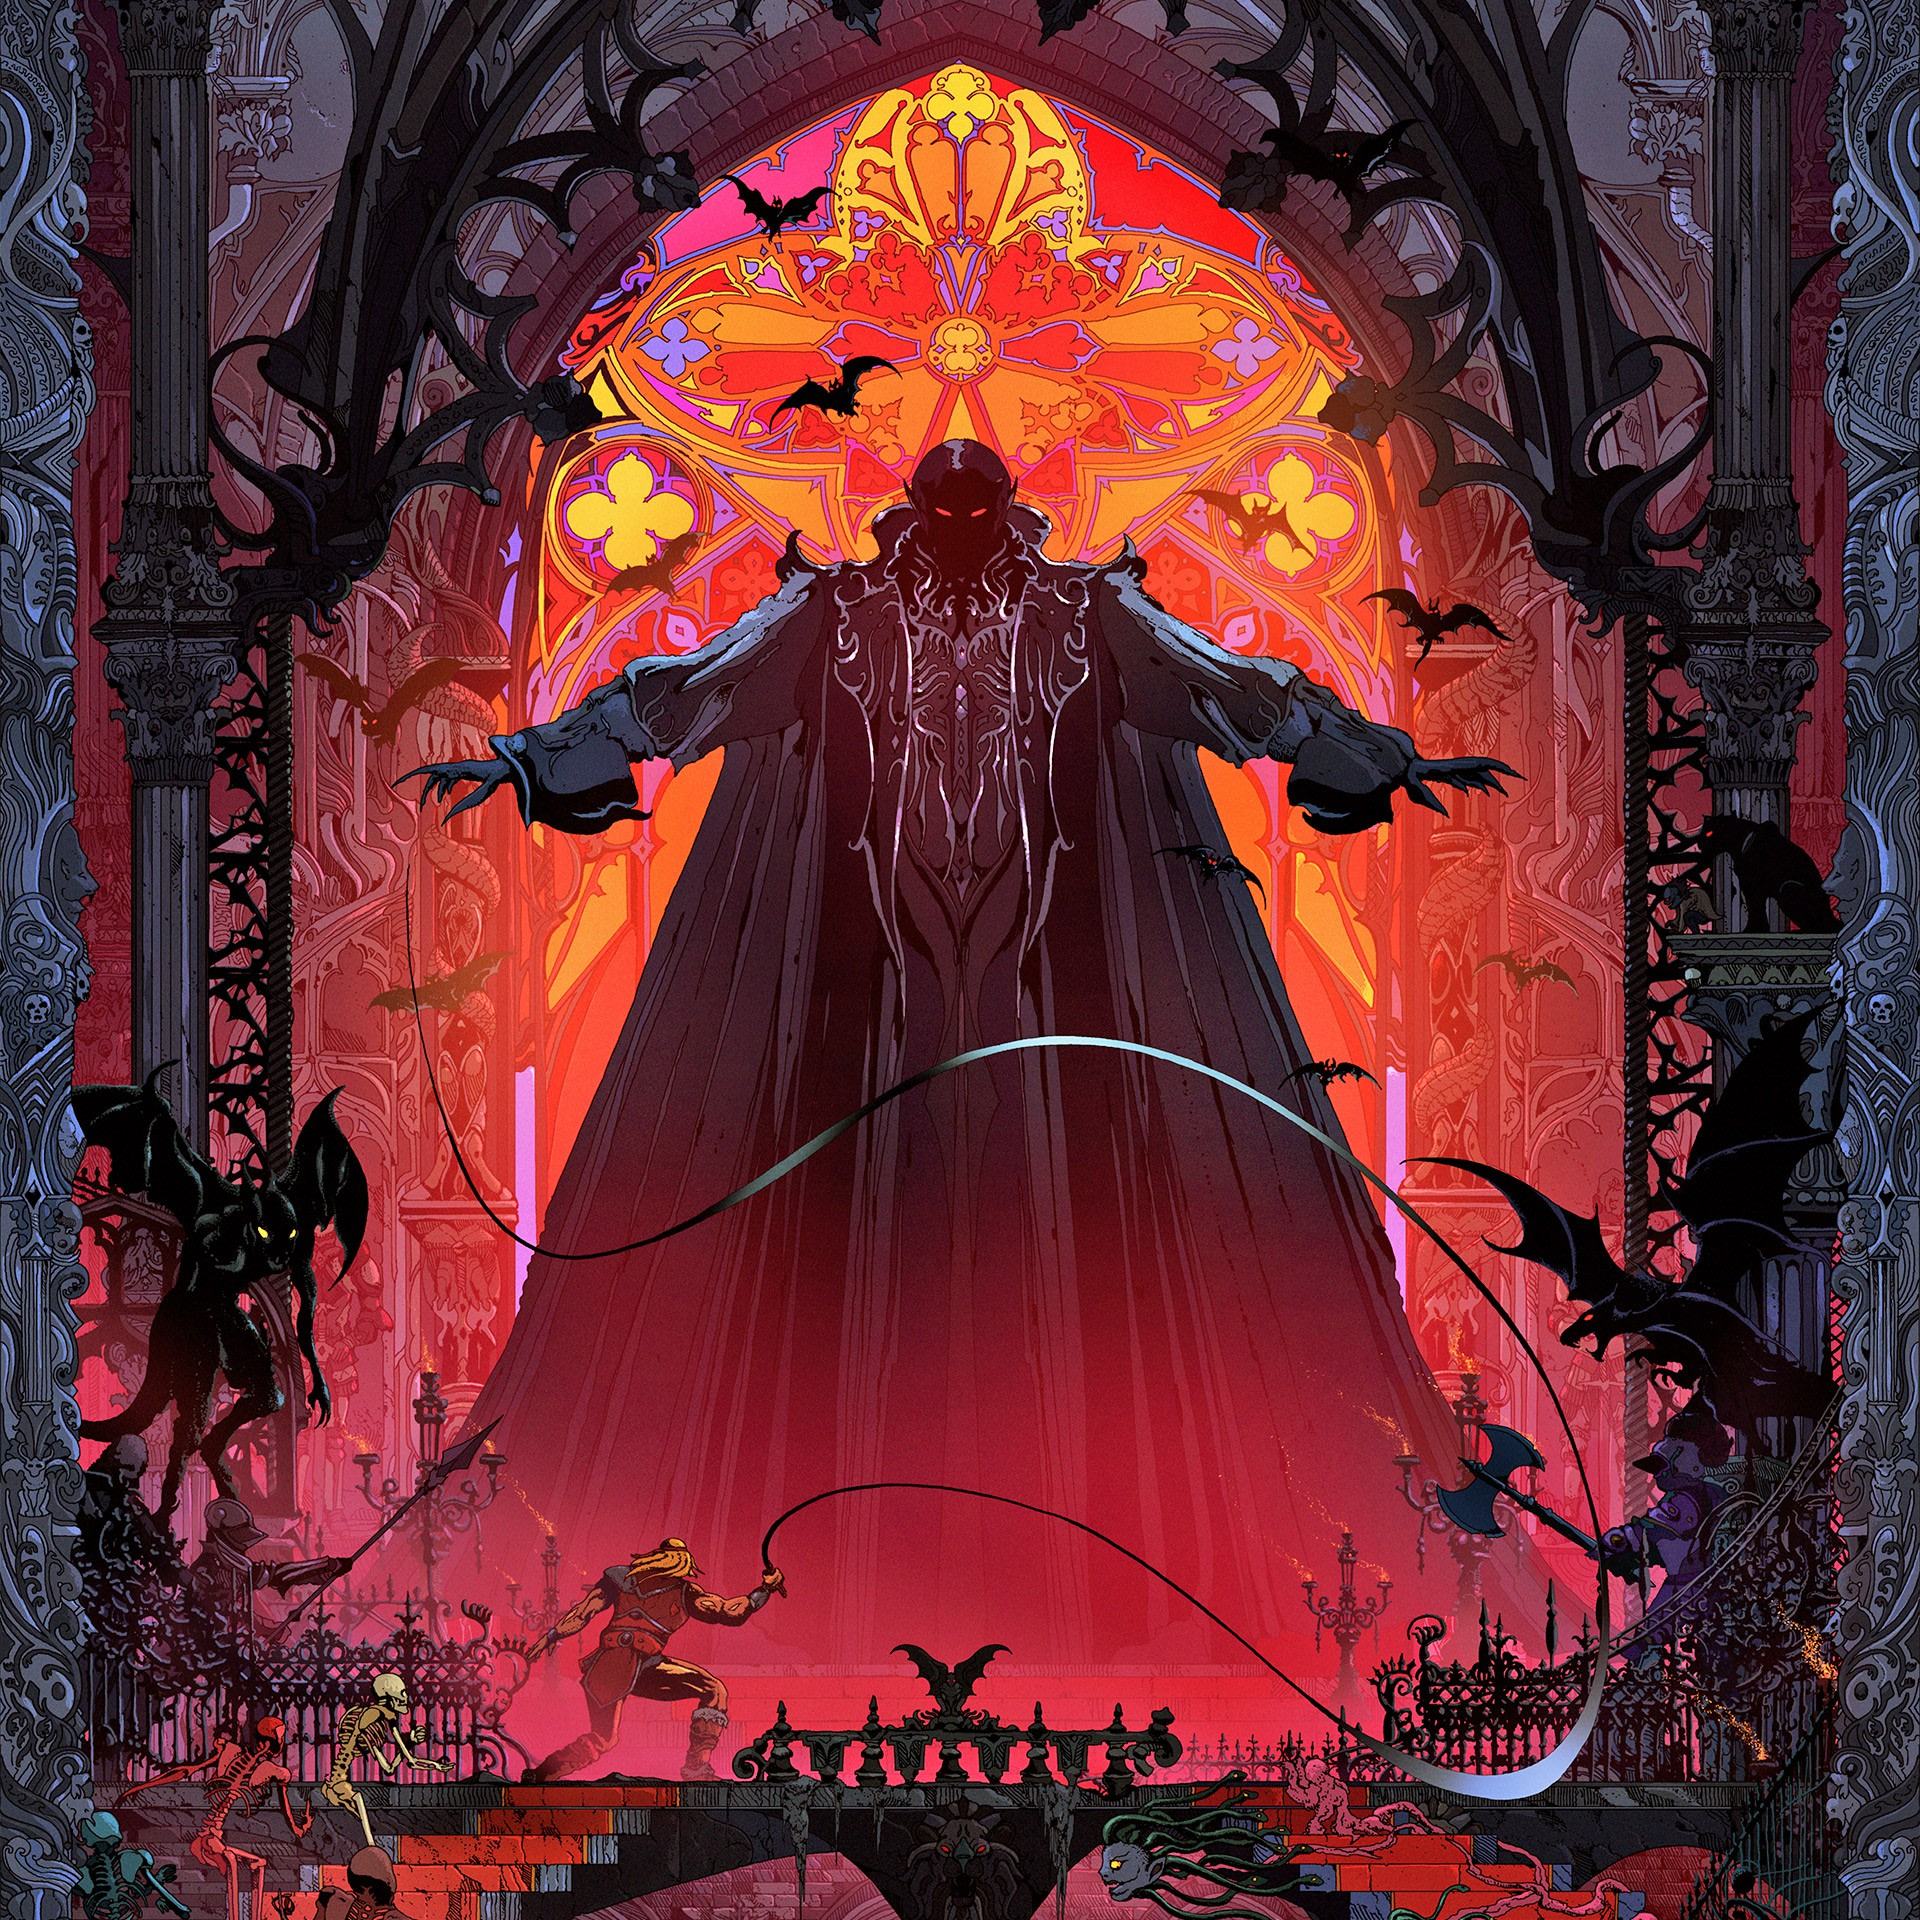 The Gothic Success of Castlevania